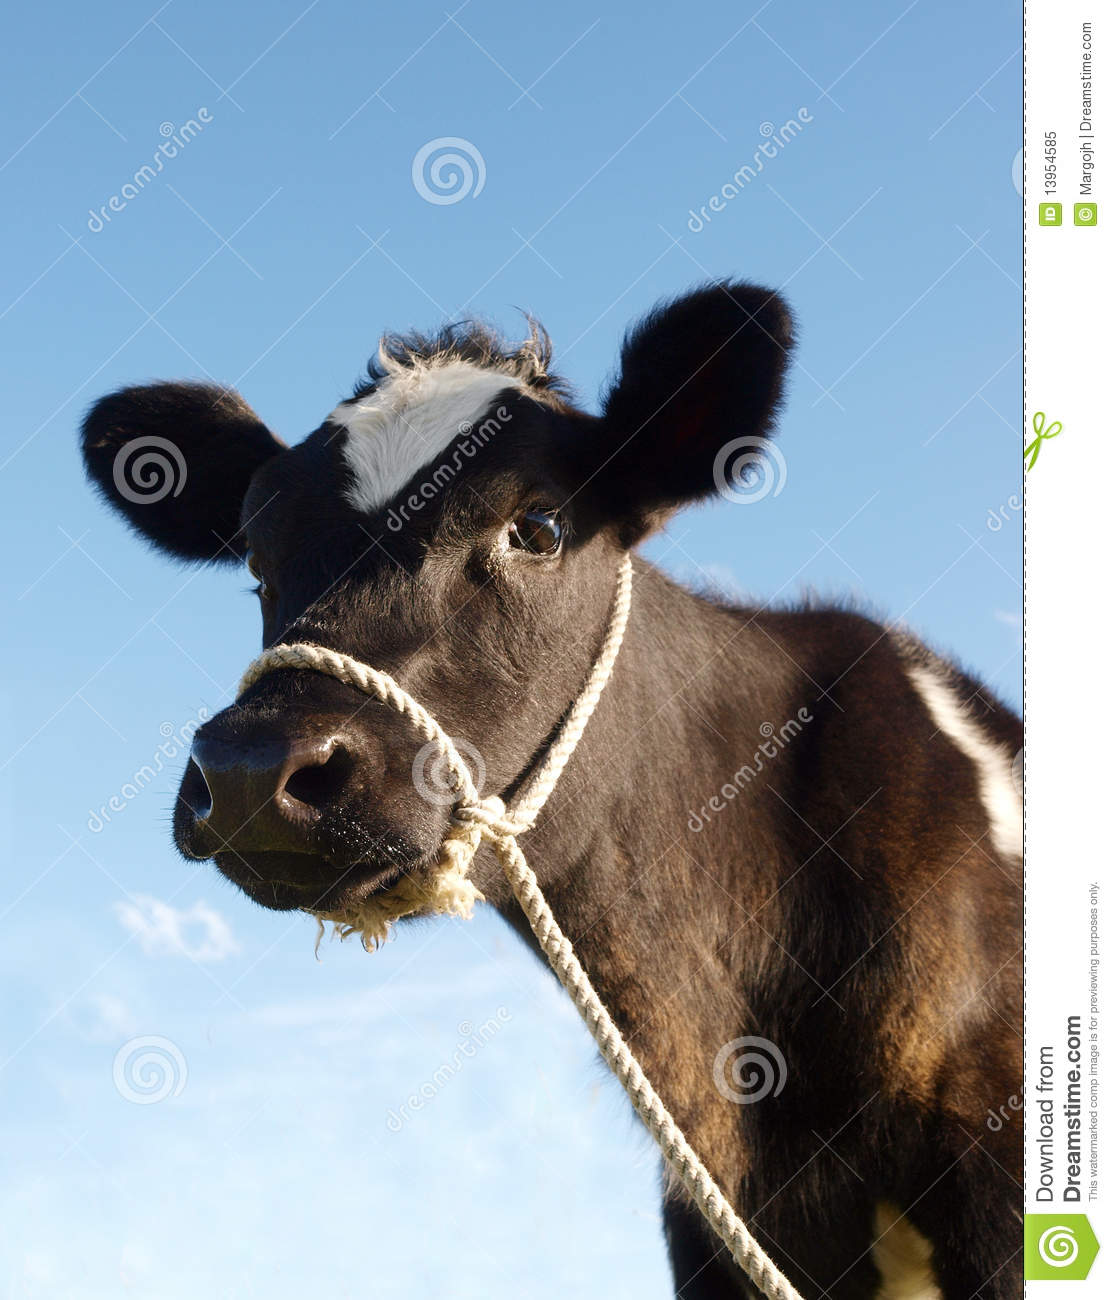 calf with rope halter royalty free stock photo image